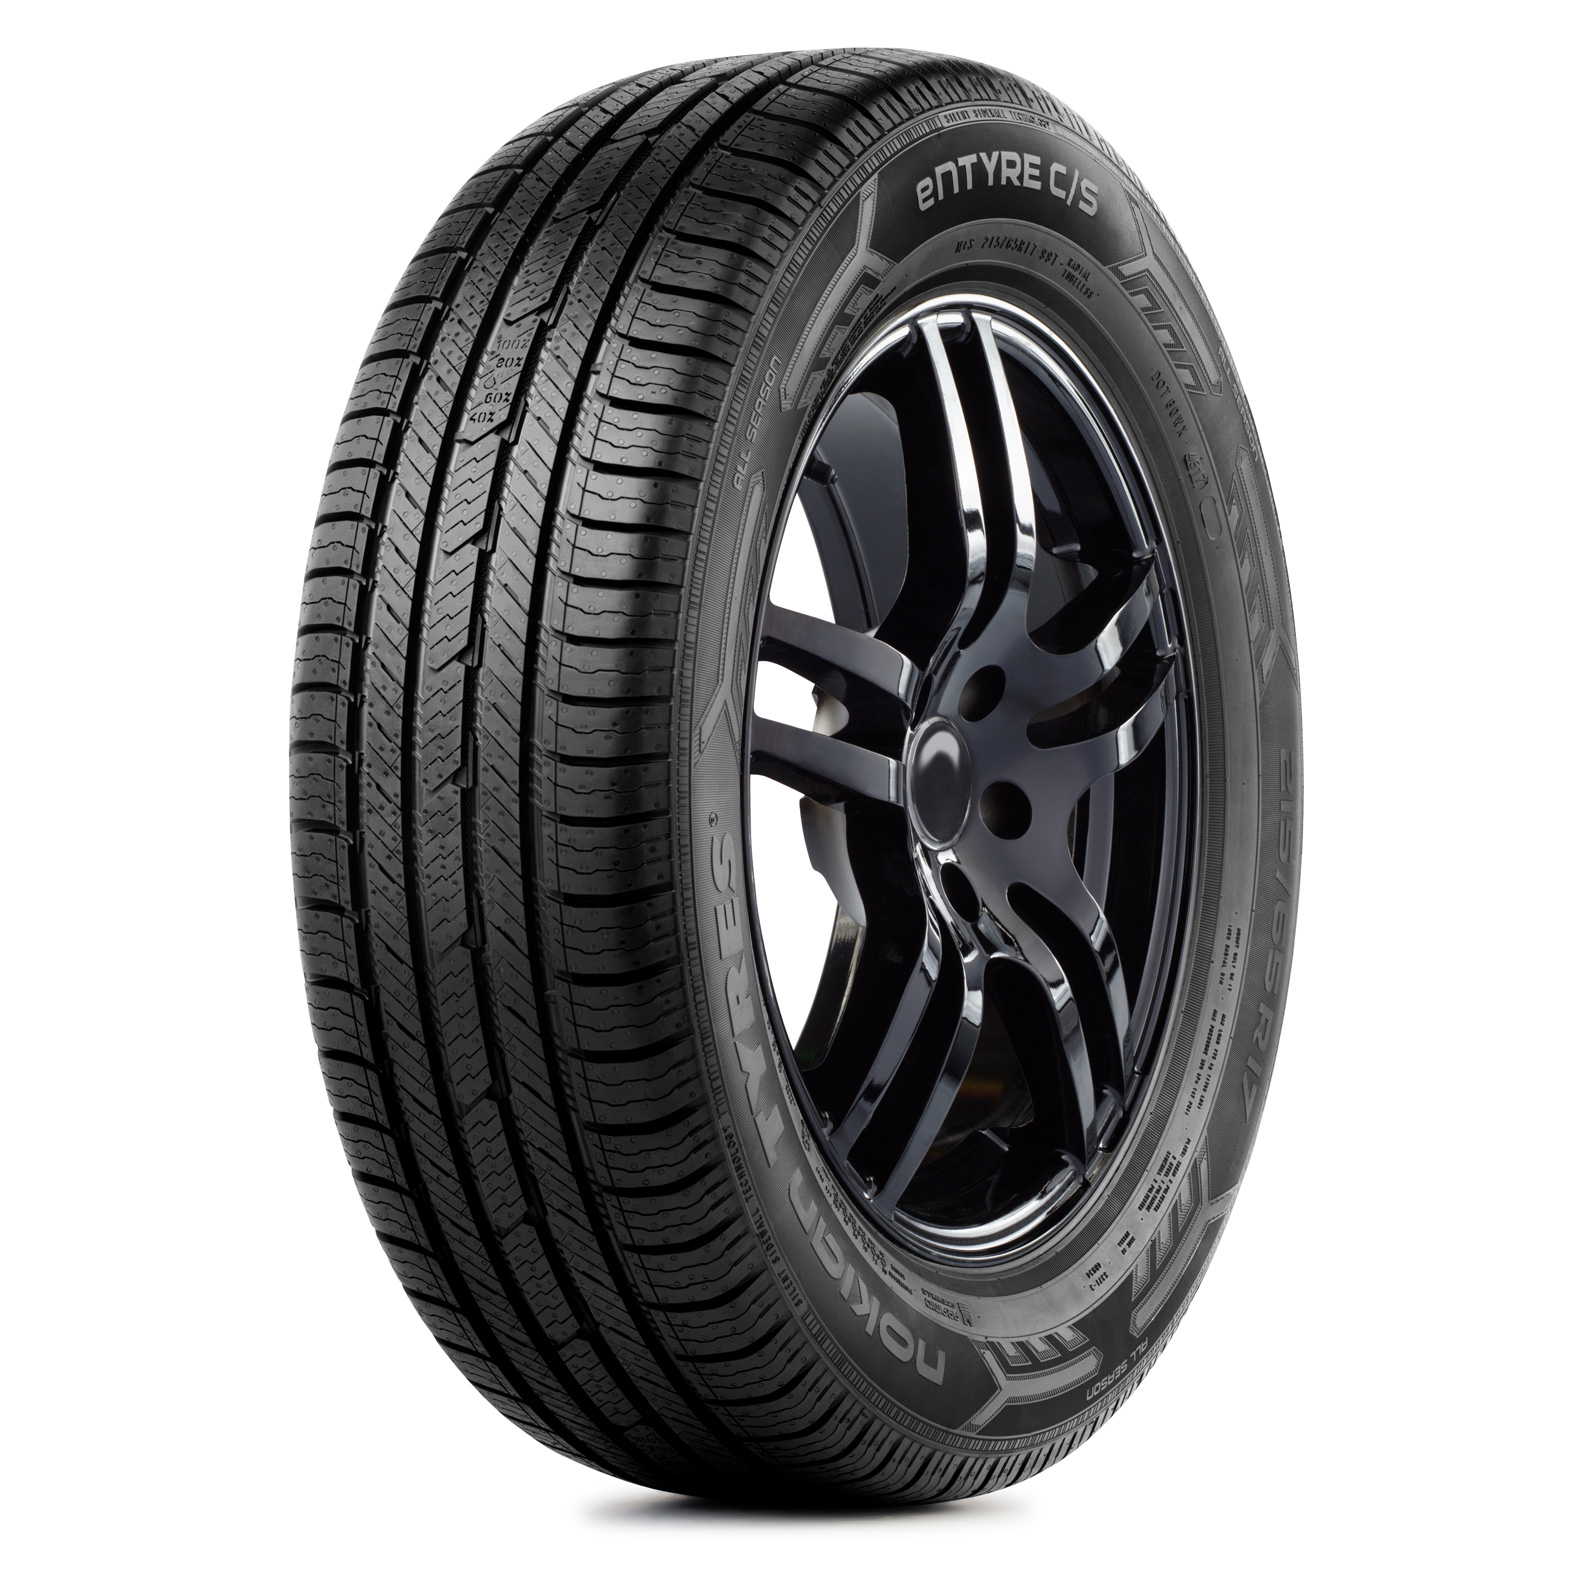 Nokian Tyres Entyre C/S tire - angle